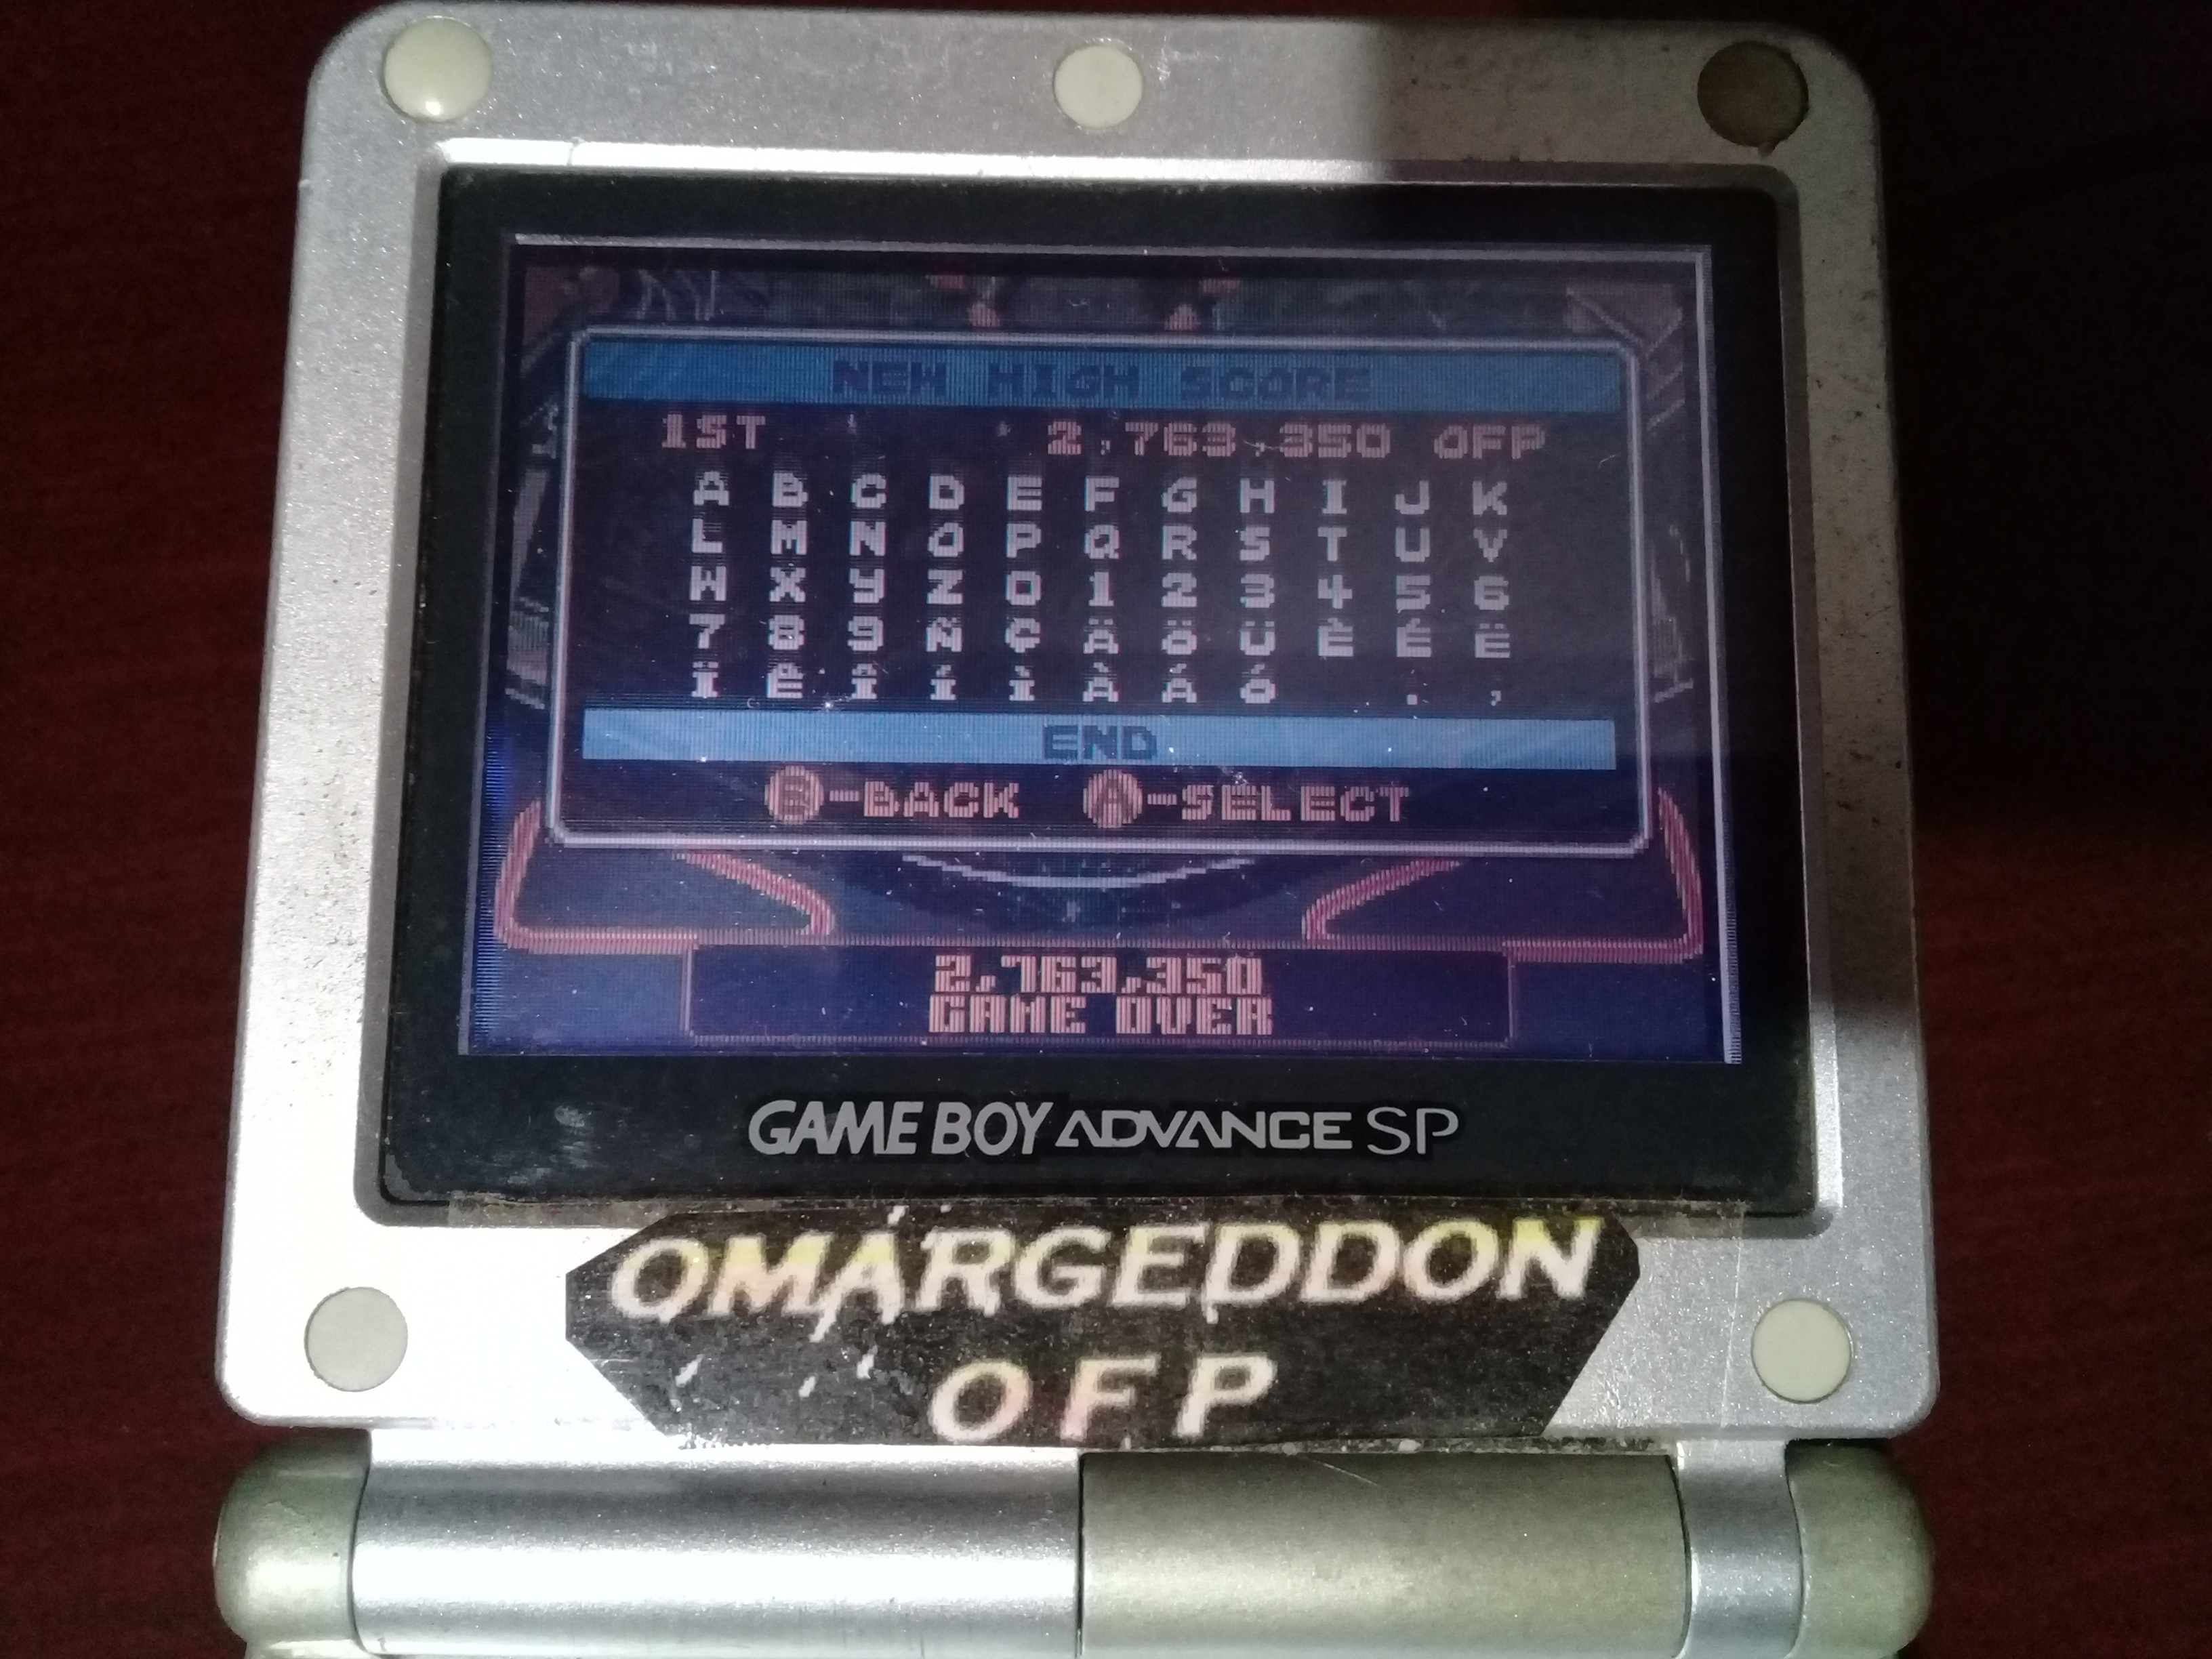 omargeddon: Pinball Advance: Tarantula [5 Balls] [Medium] (GBA) 2,763,350 points on 2019-11-02 01:38:18